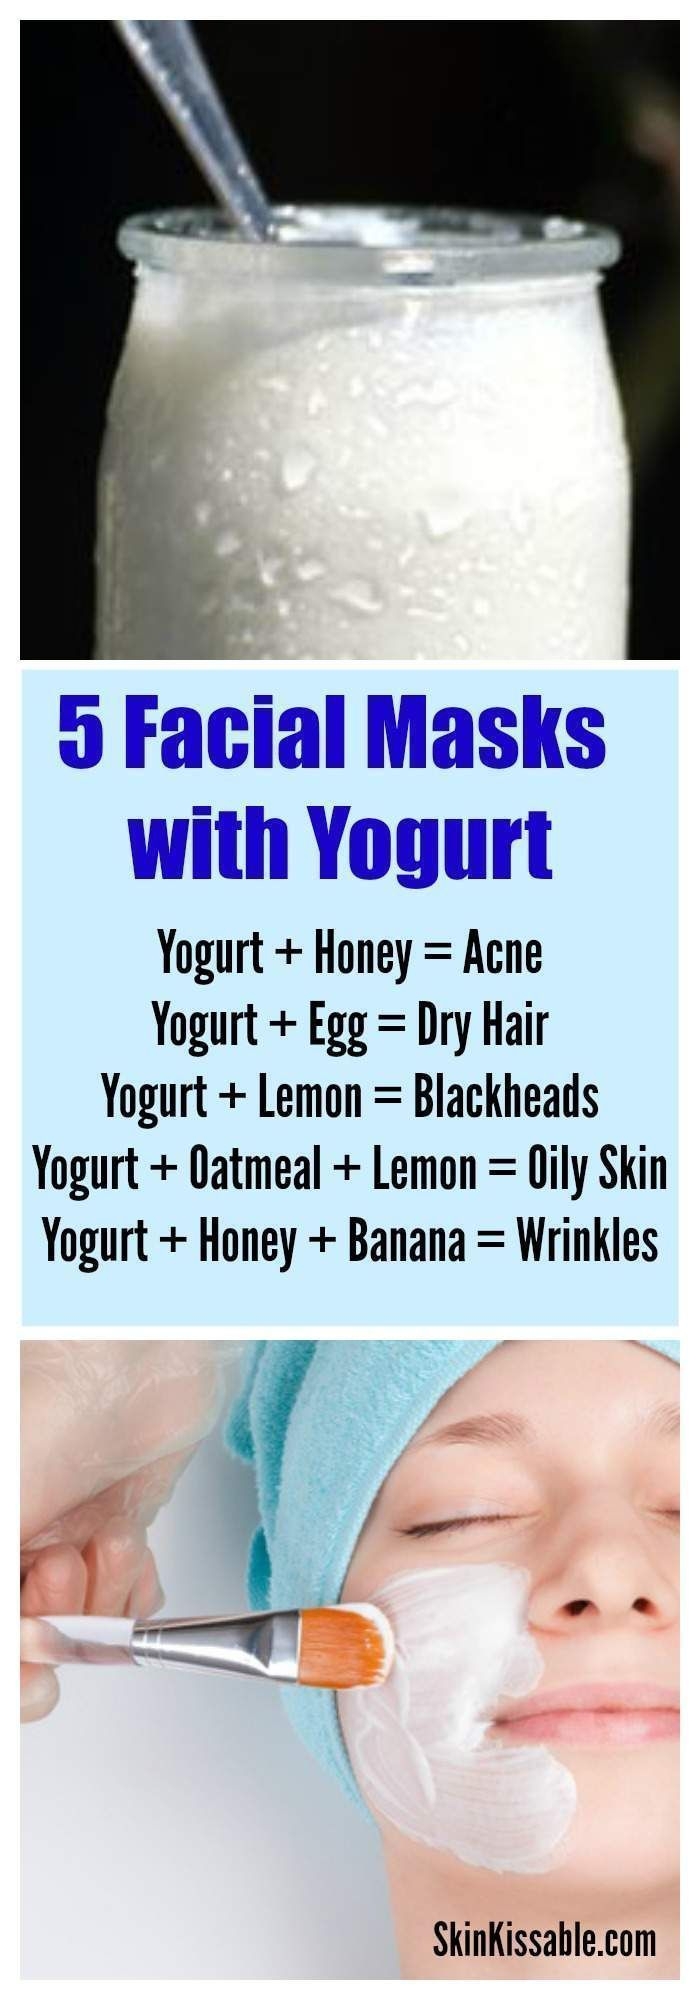 best Health images on Pinterest  Home remedies Health and